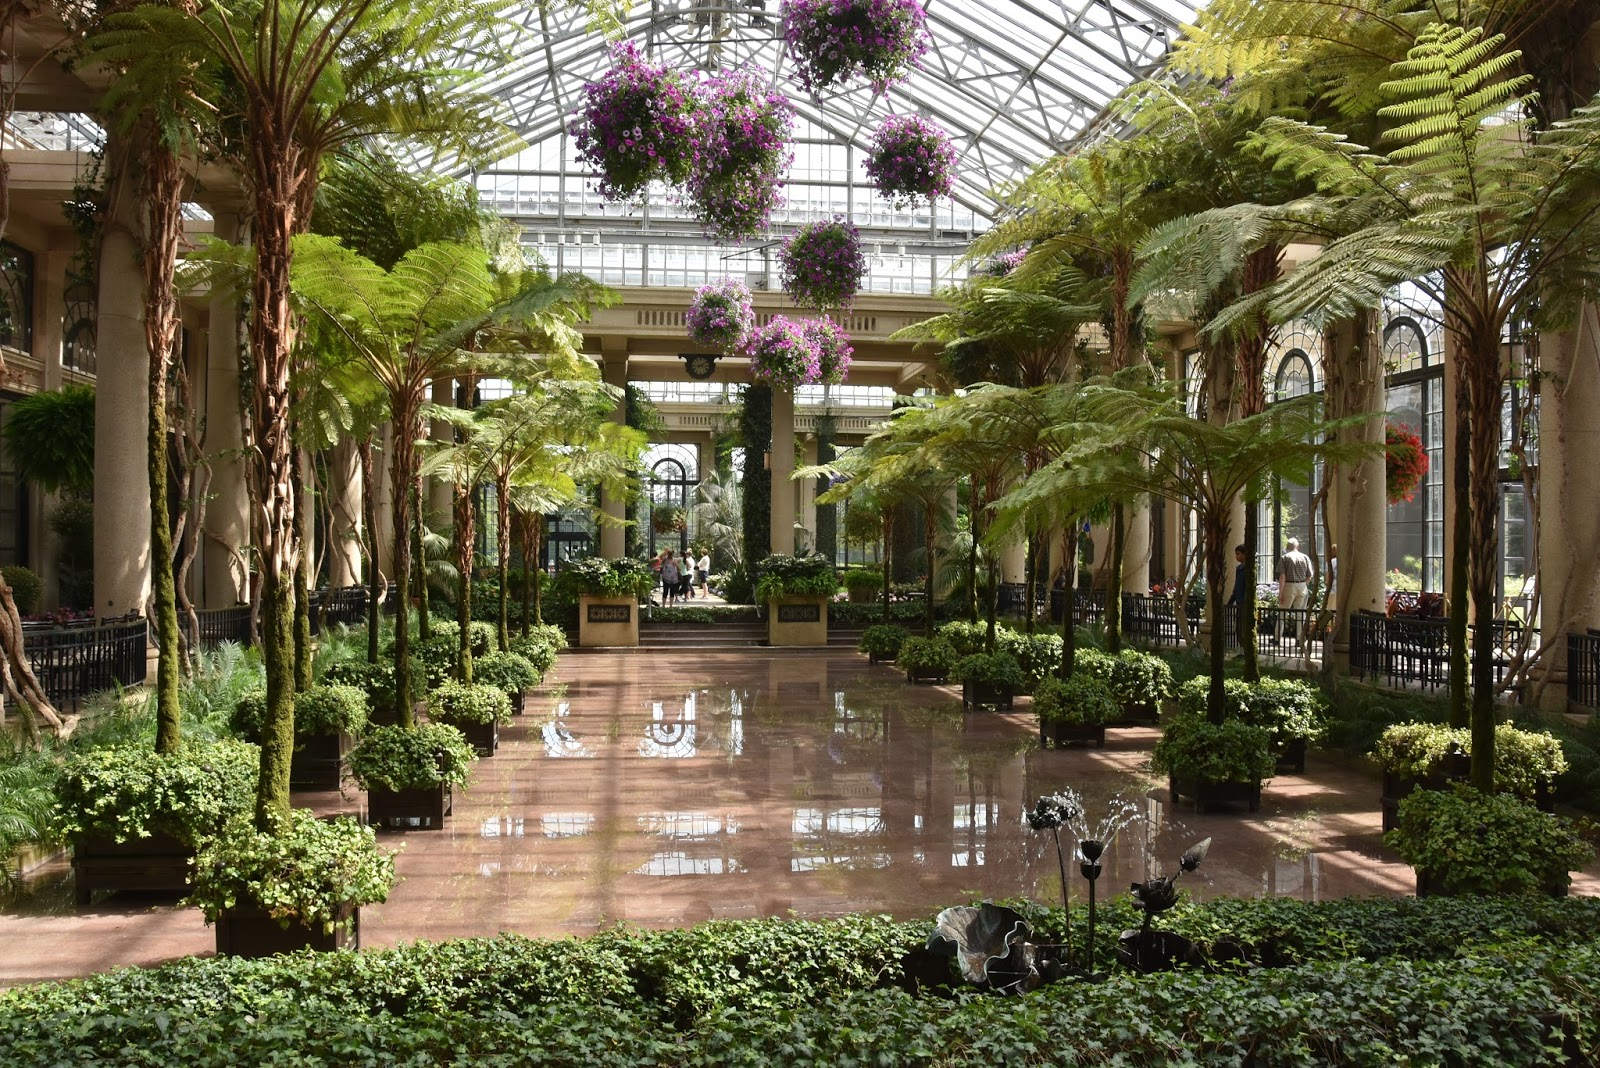 The Happy Wanderers: Day 46 -- All day at Longwood Gardens, Kennett ...